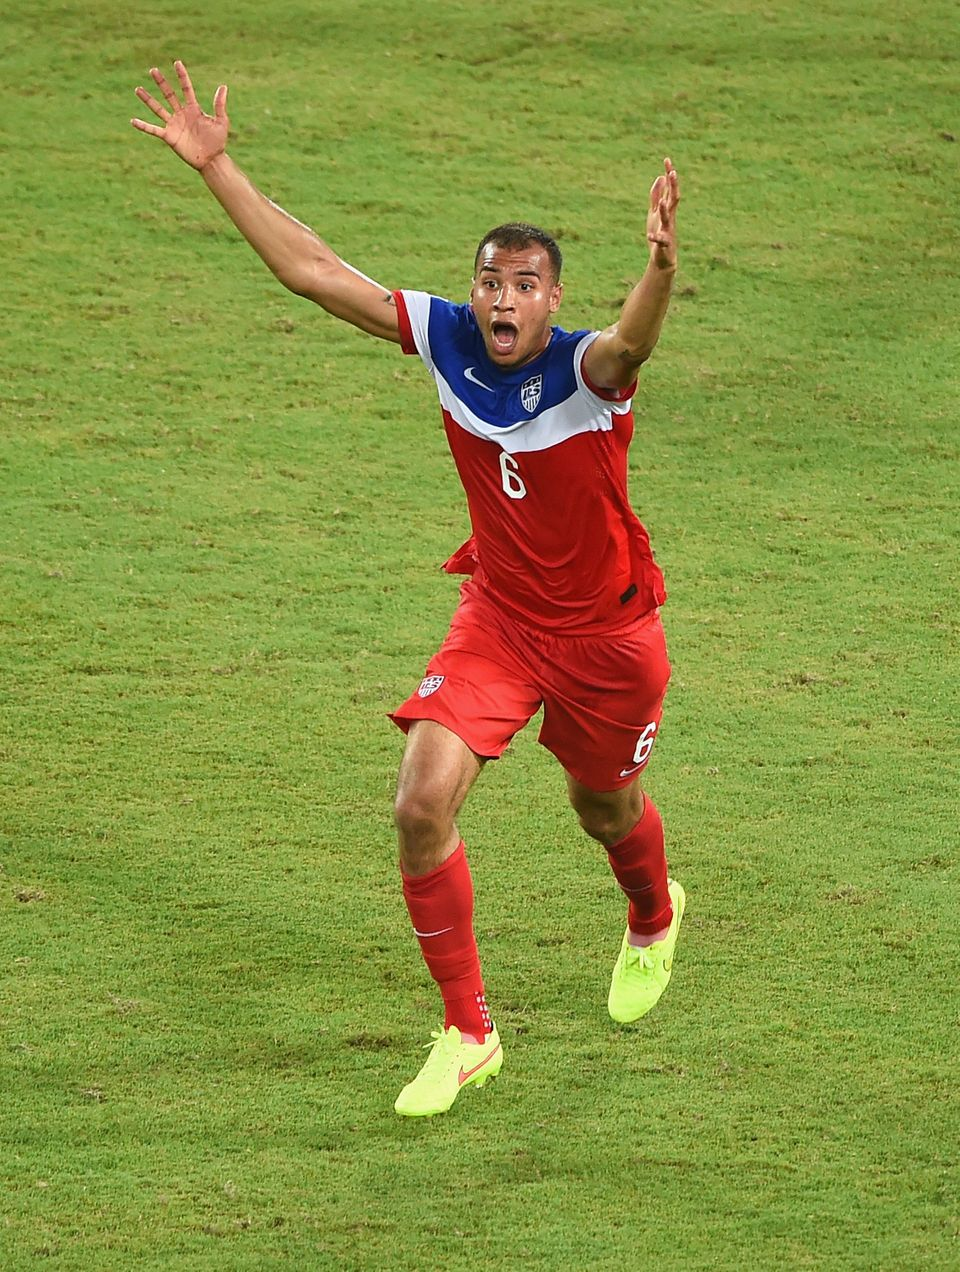 NATAL, BRAZIL - JUNE 16: John Brooks of the United States celebrates after scoring his team's second goal during the 2014 FIF